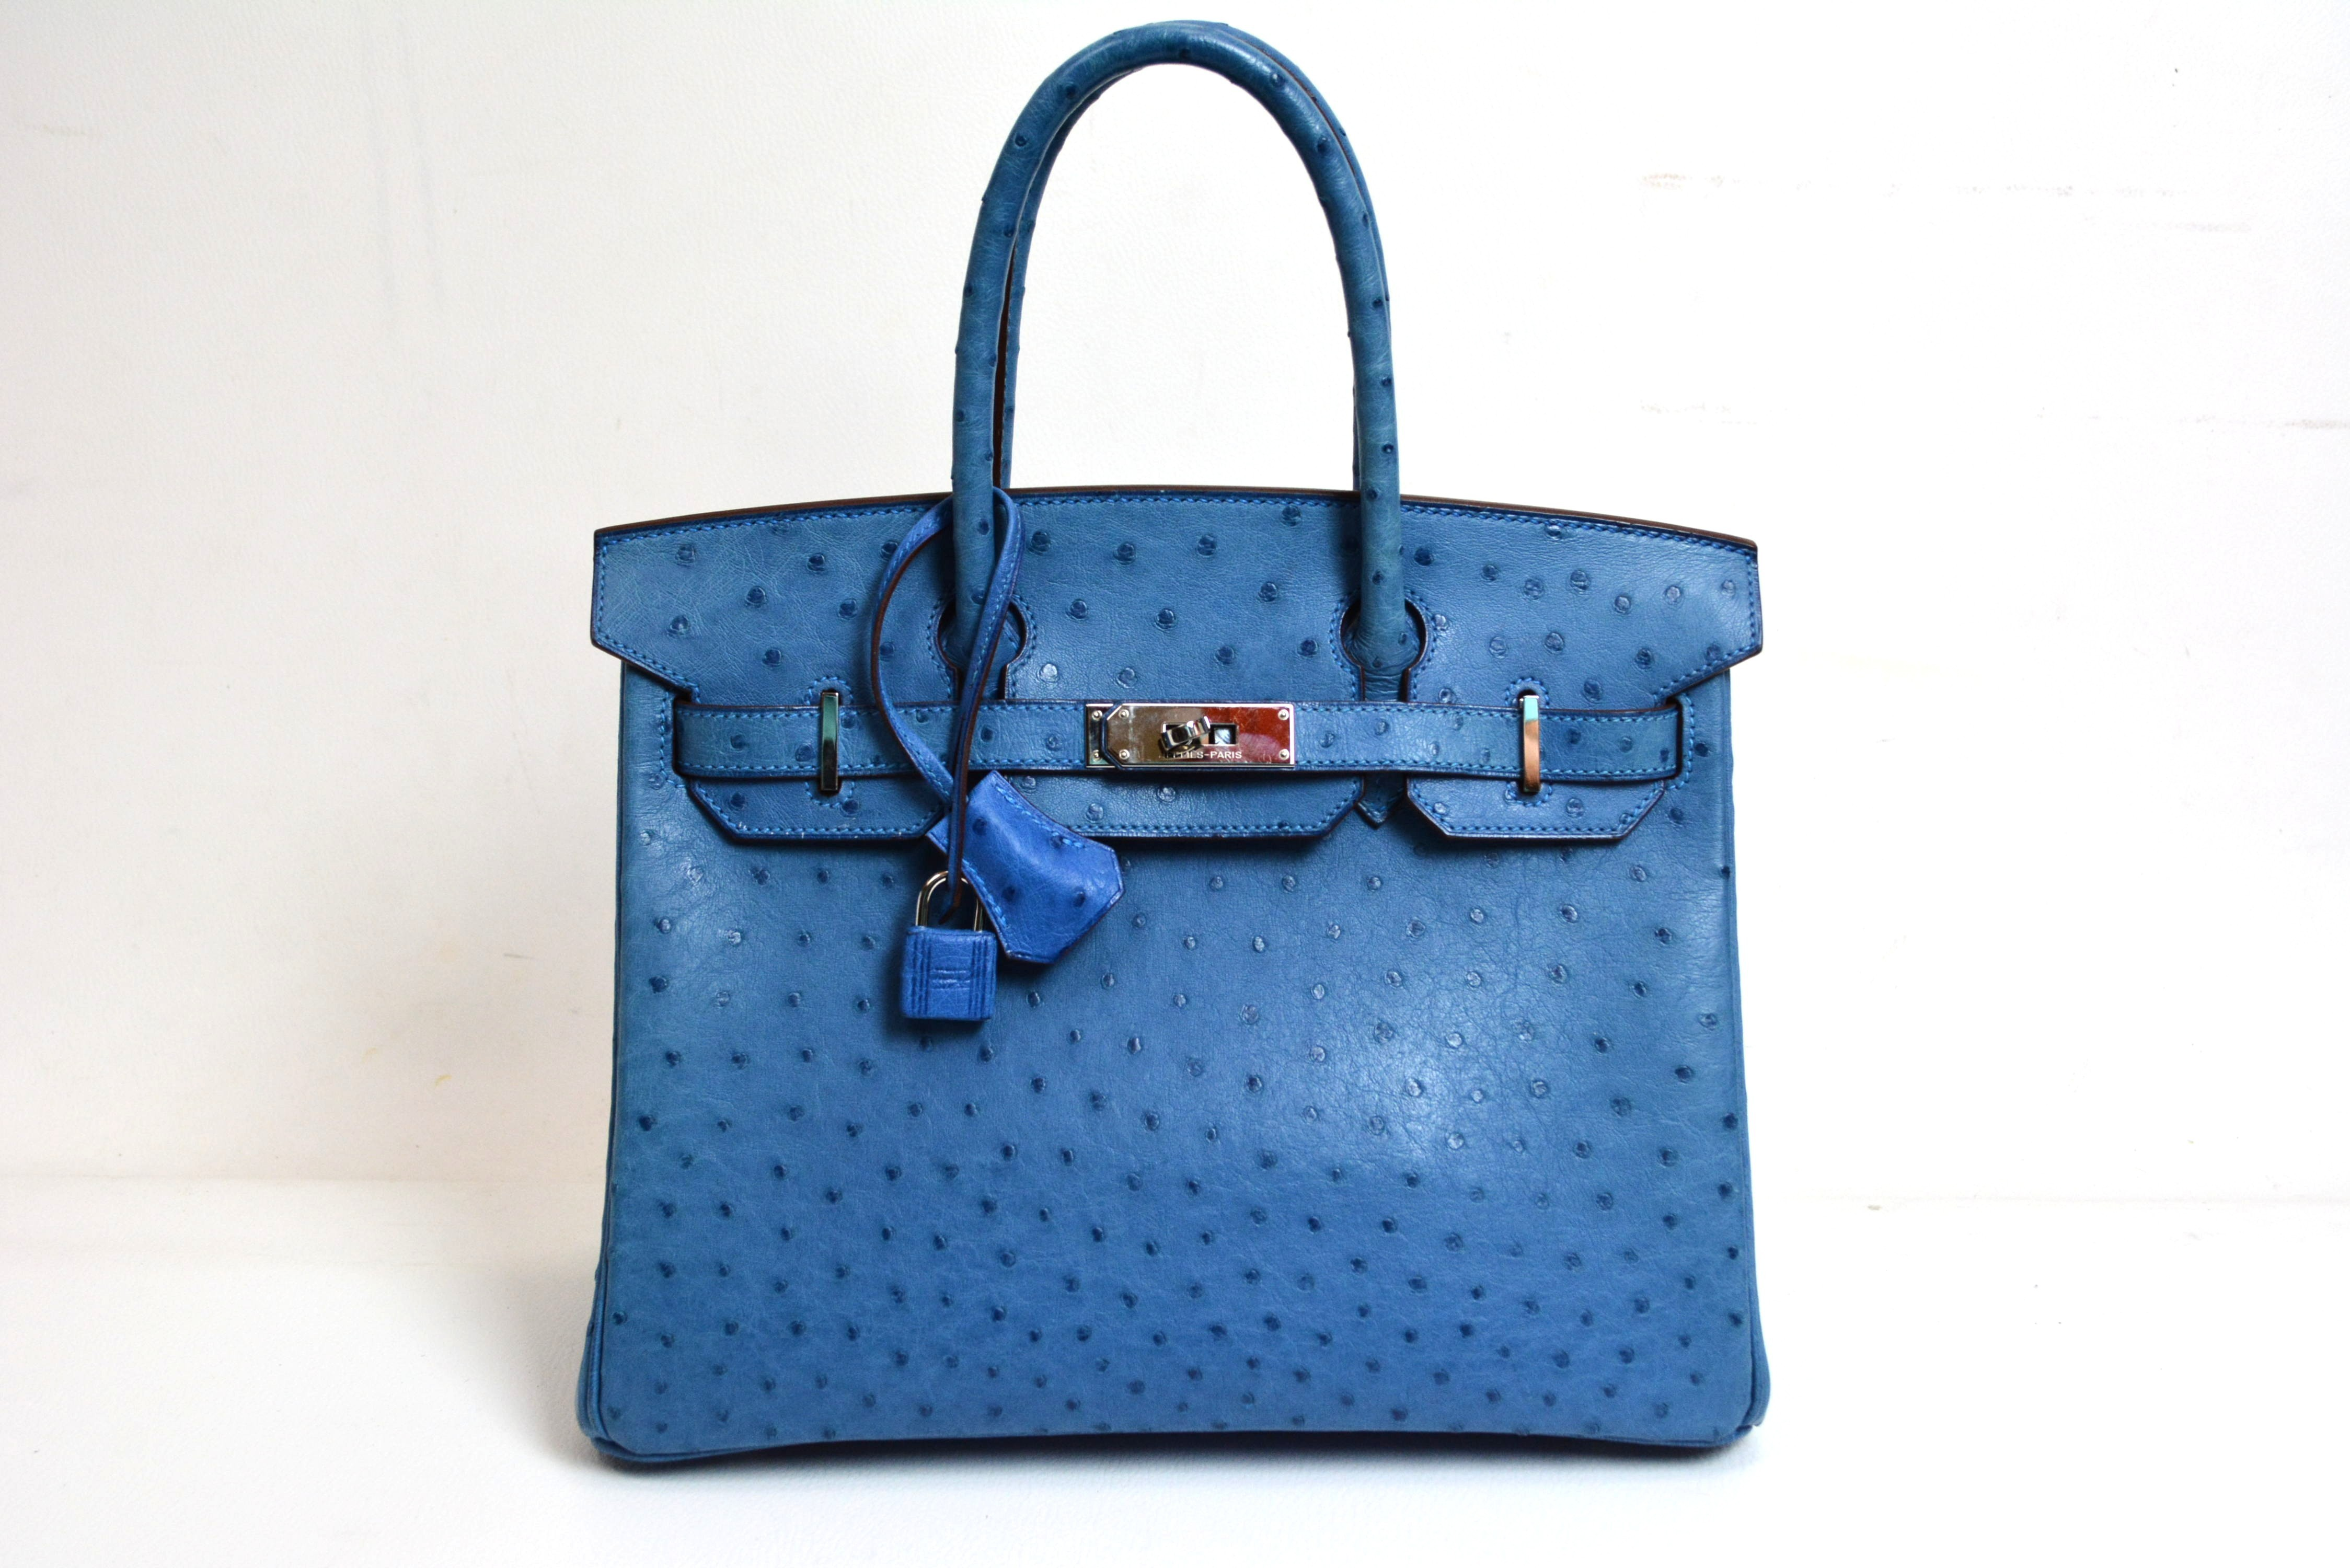 ddbc723711d0 10 Facts About the Hermès Kelly Bag That May Surprise You - Catawiki